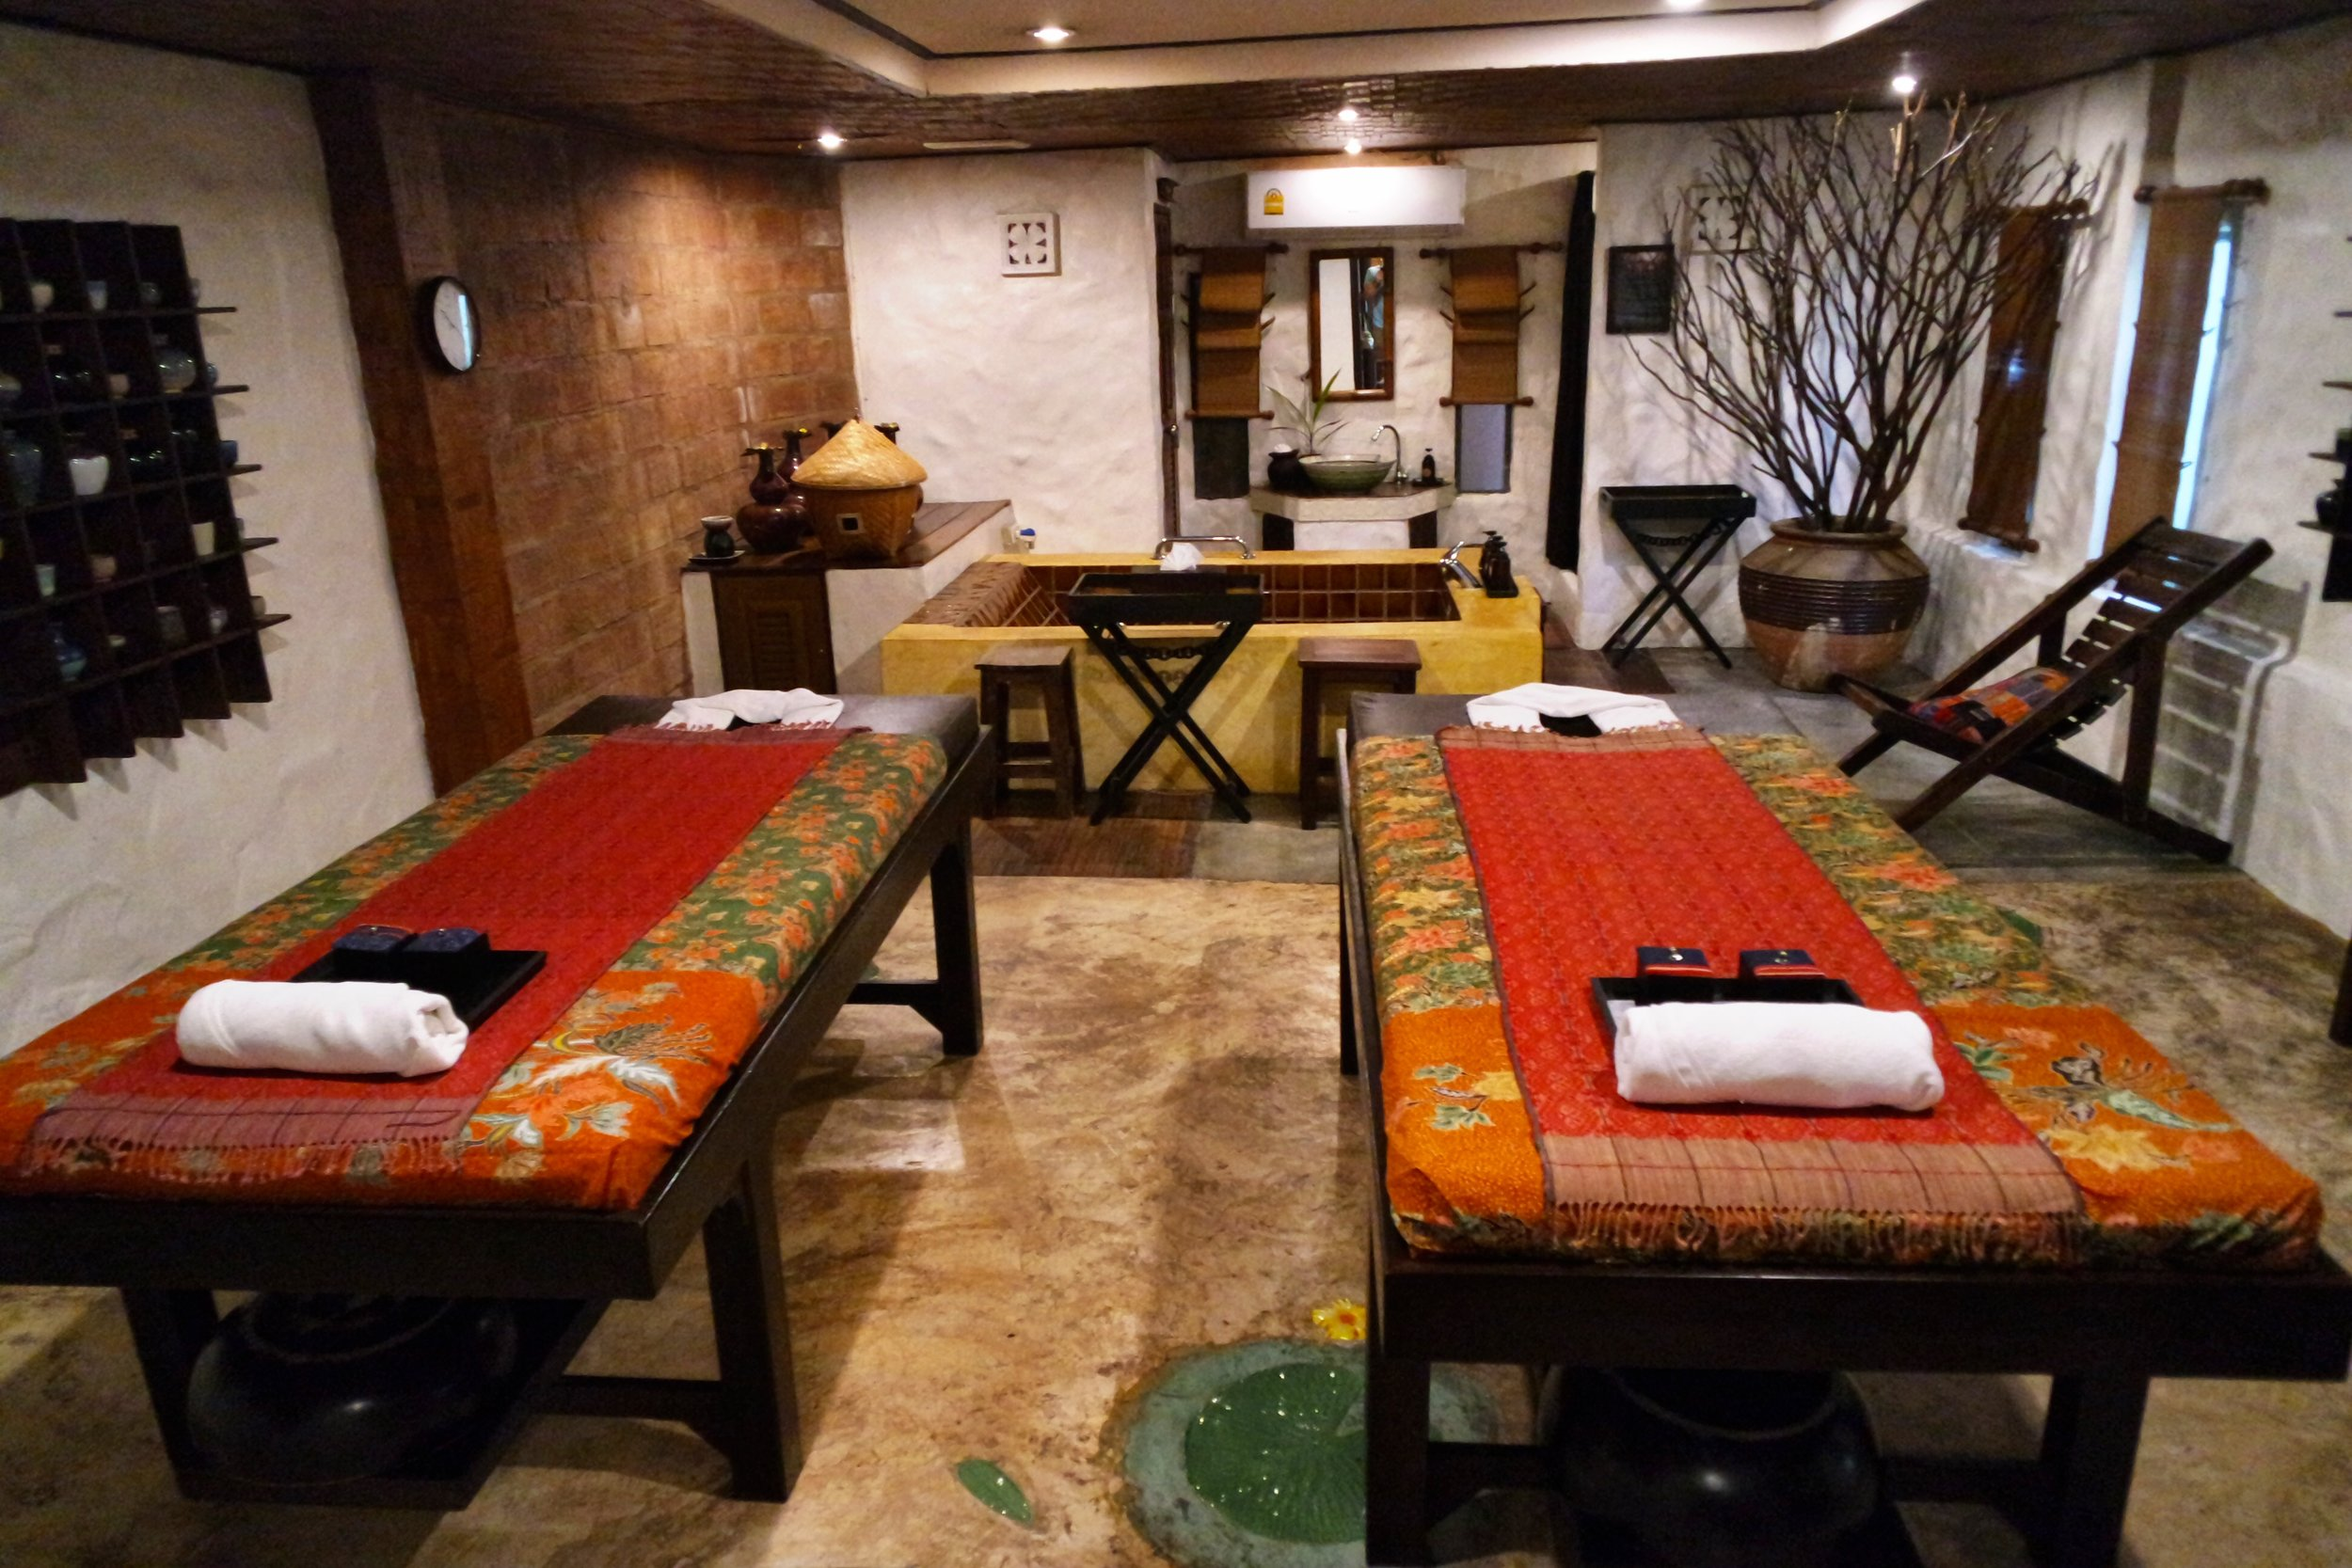 The rooms at Fah Lanna Spa are named for local regions and the handicrafts they're known for